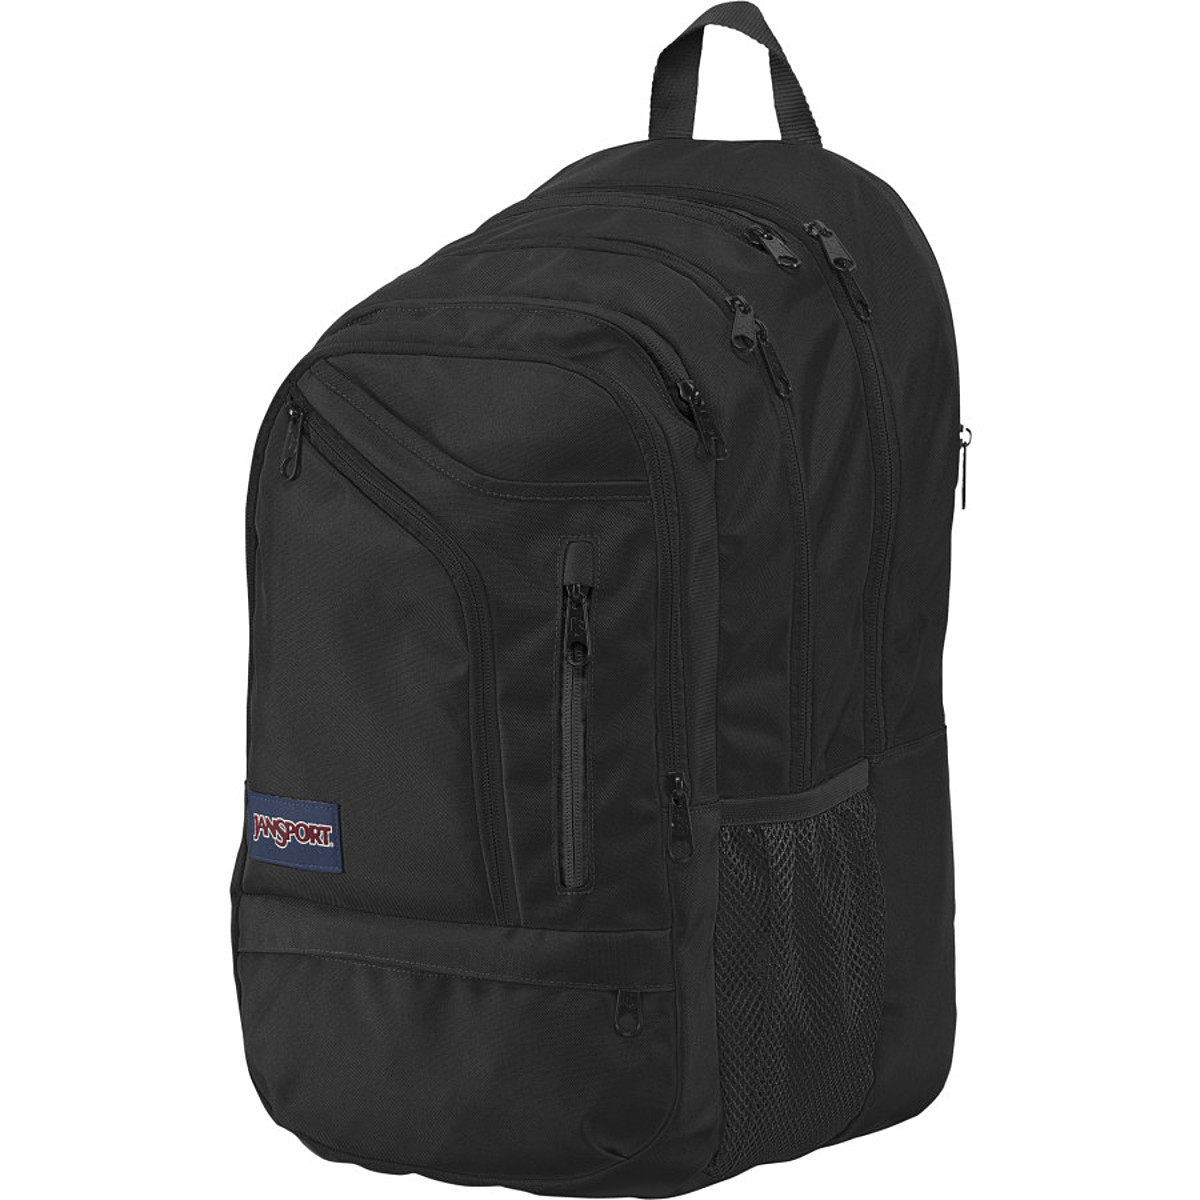 JanSport Firewire 2